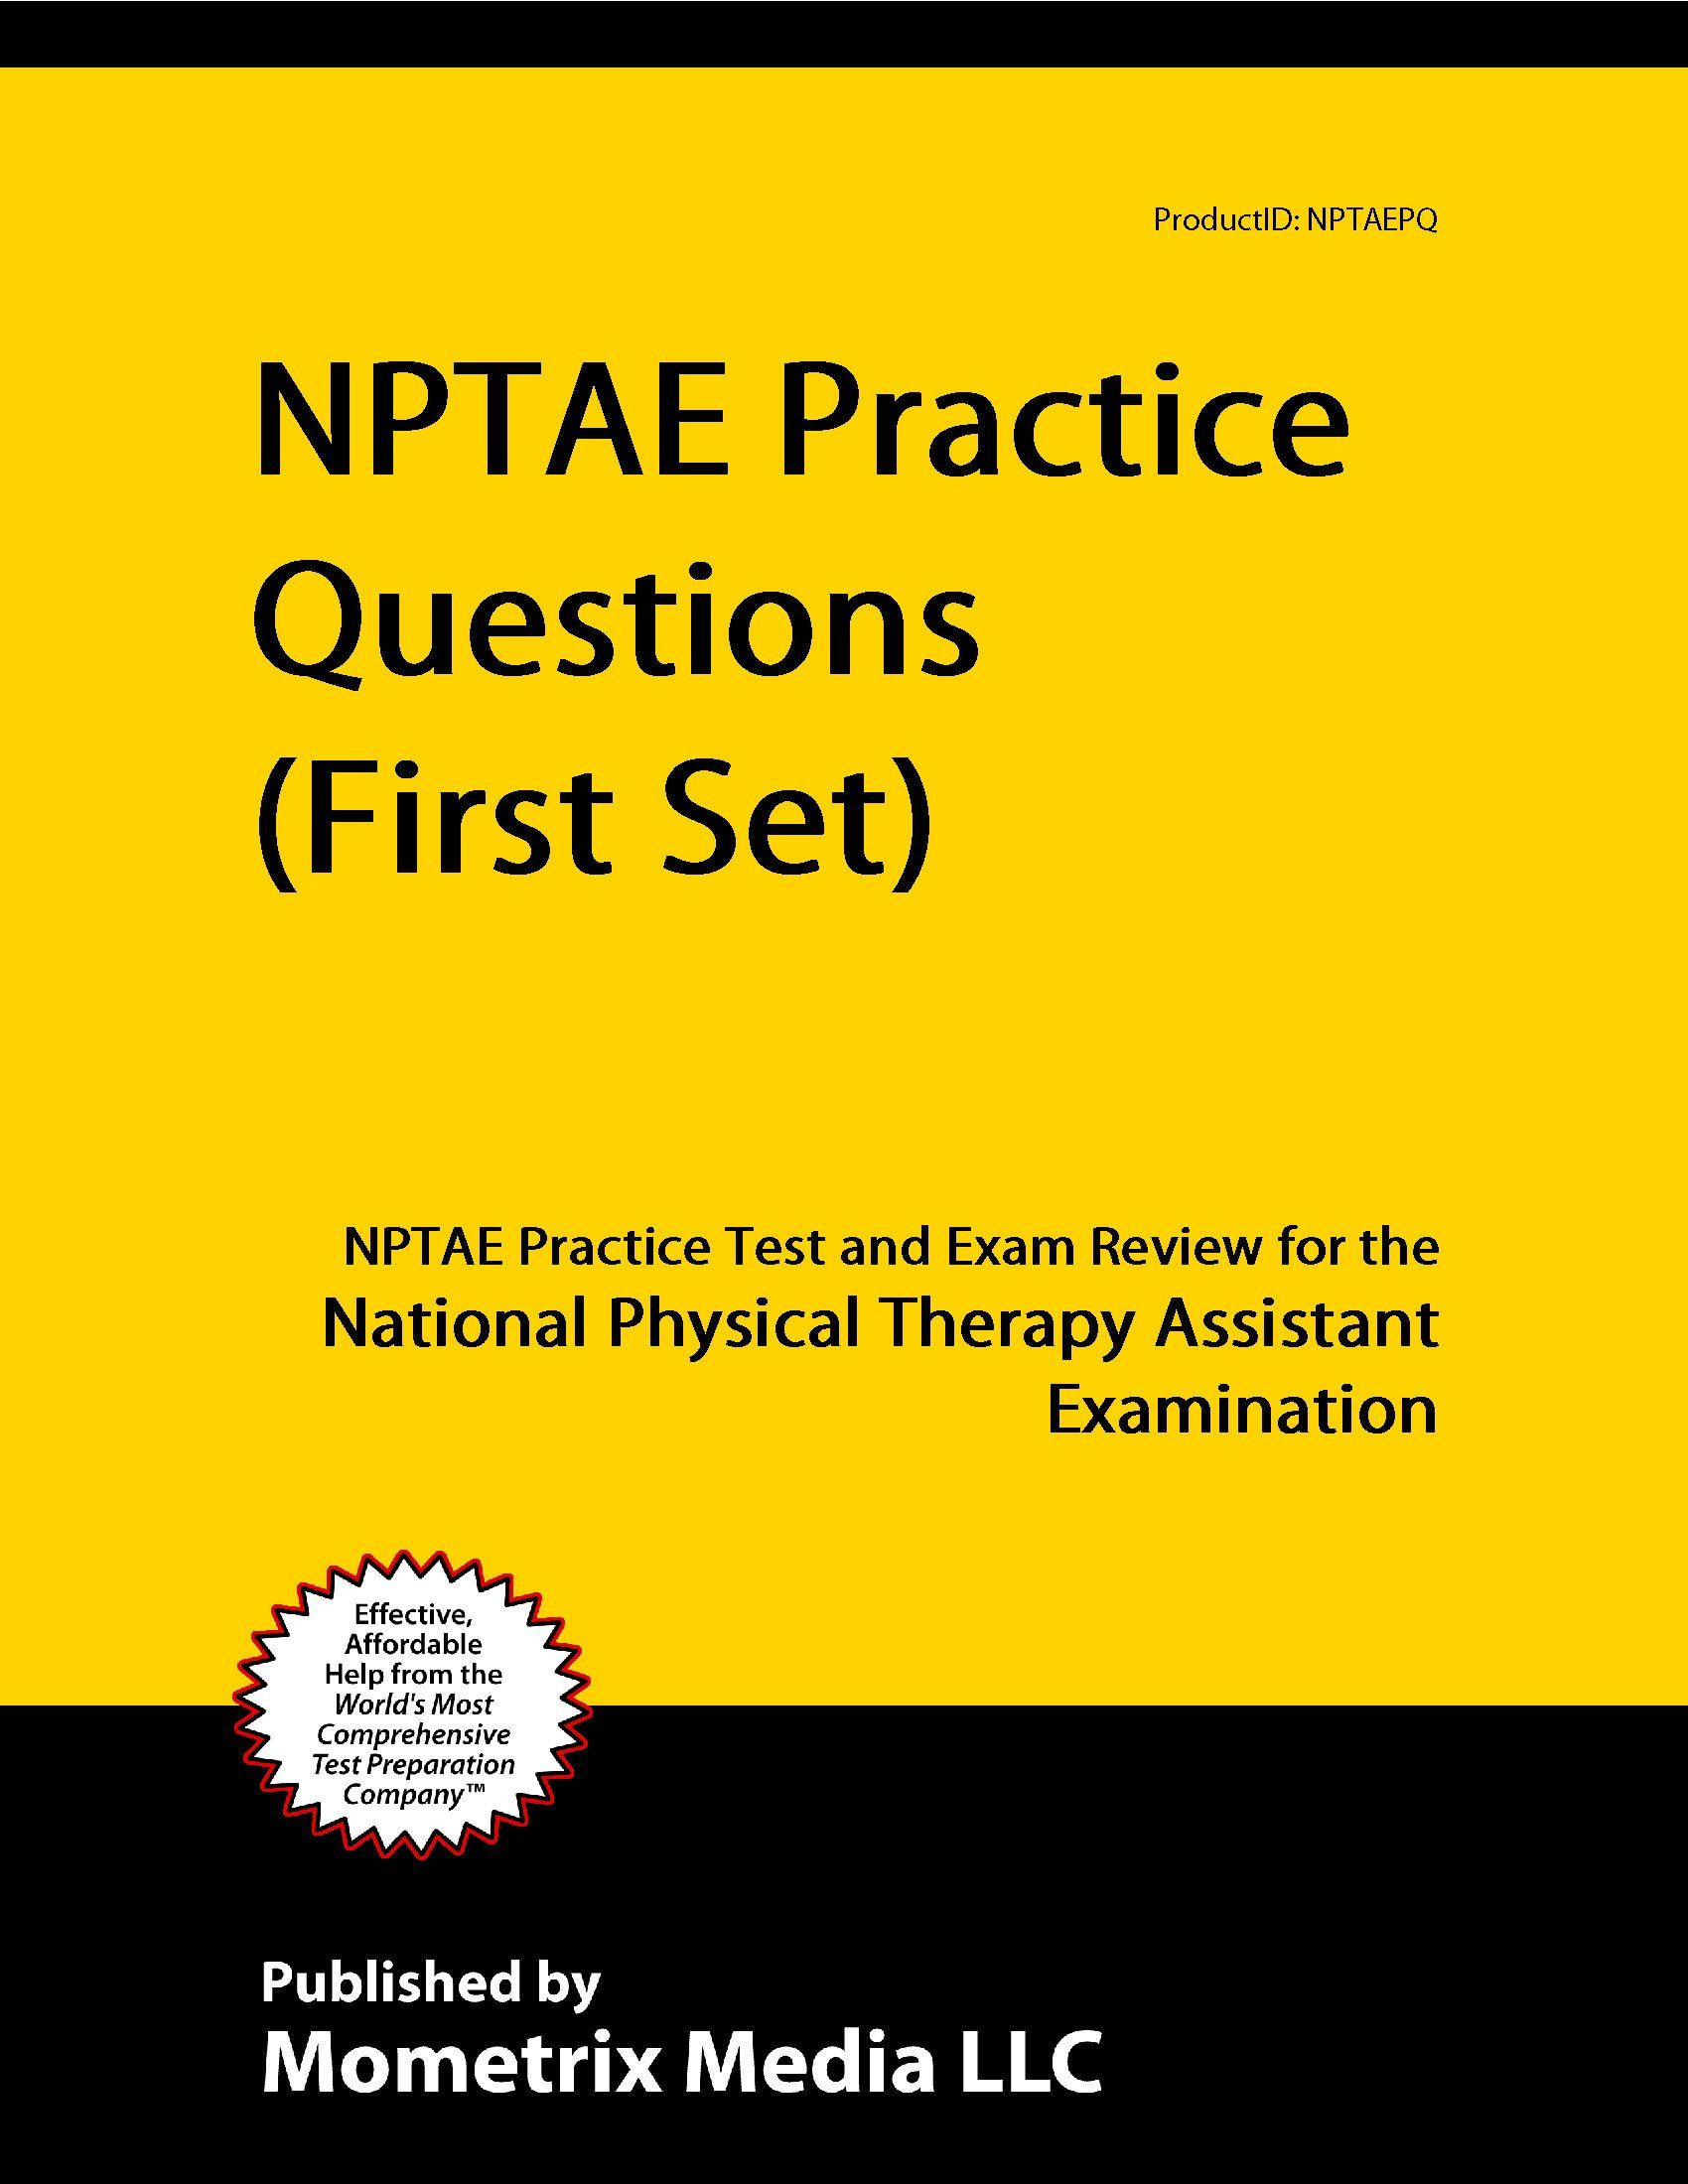 Nptae Practice Questions First Set Nptae Practice Test And Exam Review For The National